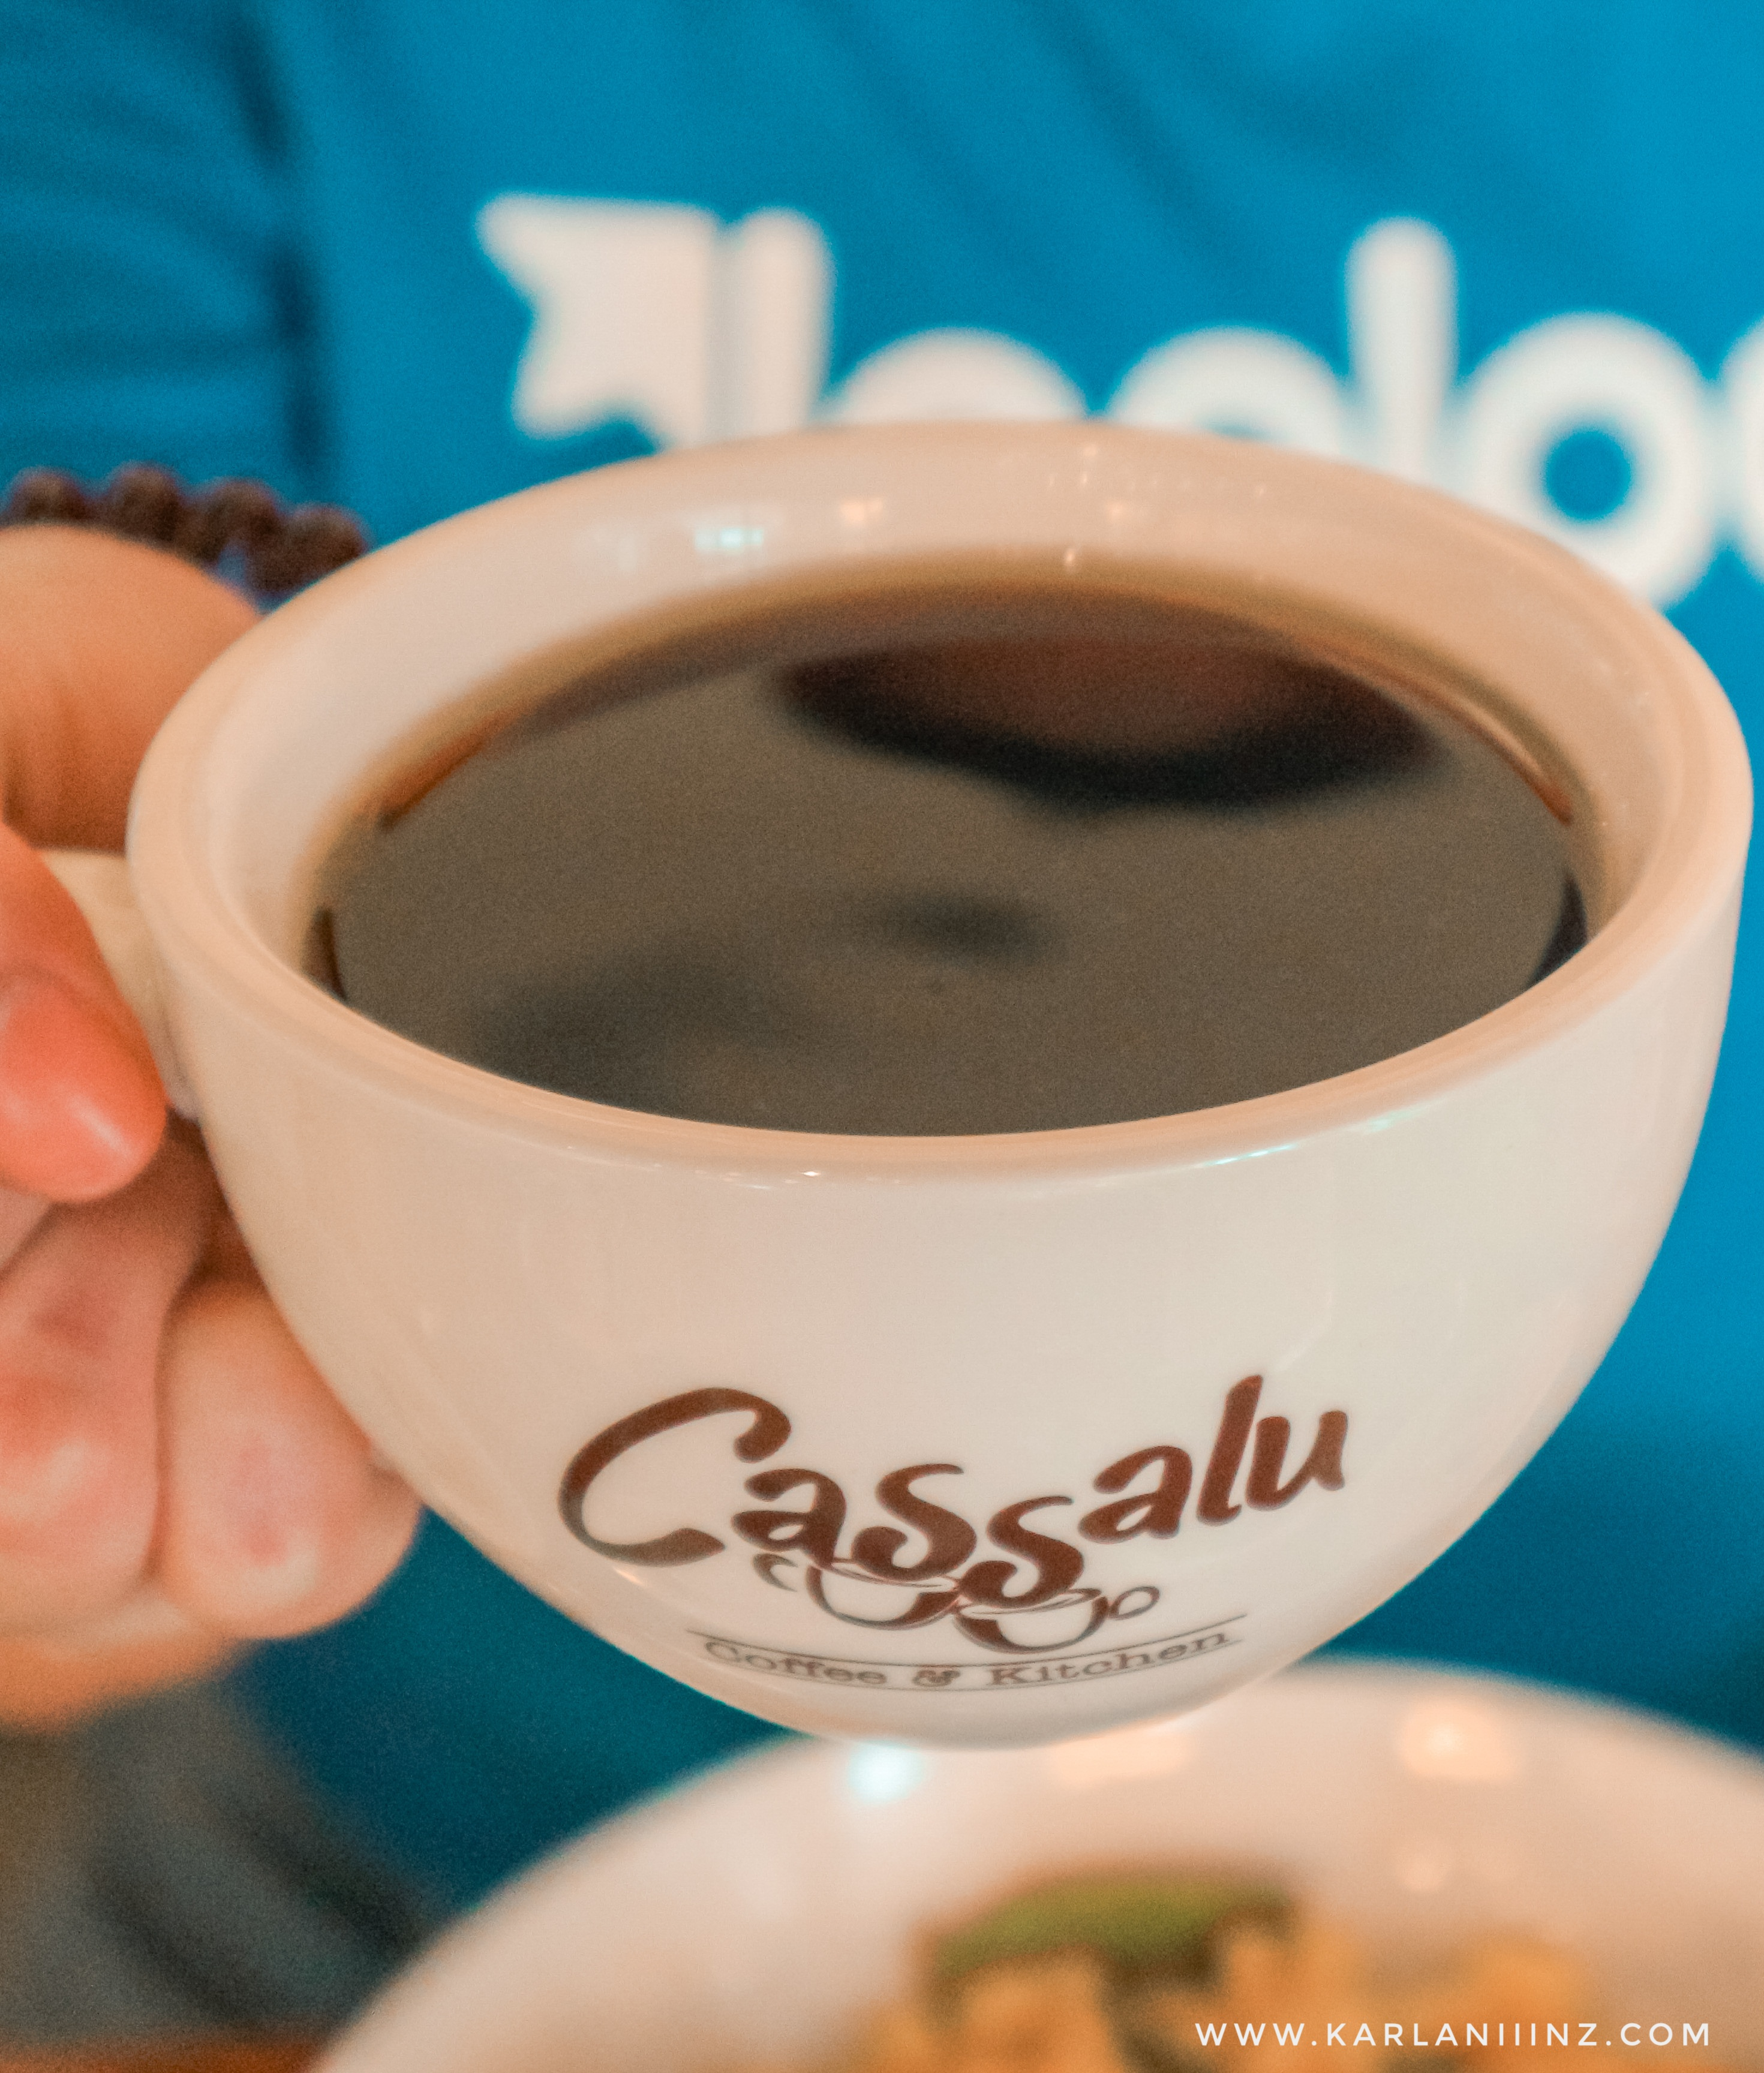 Cassalu Coffee & Kitchen